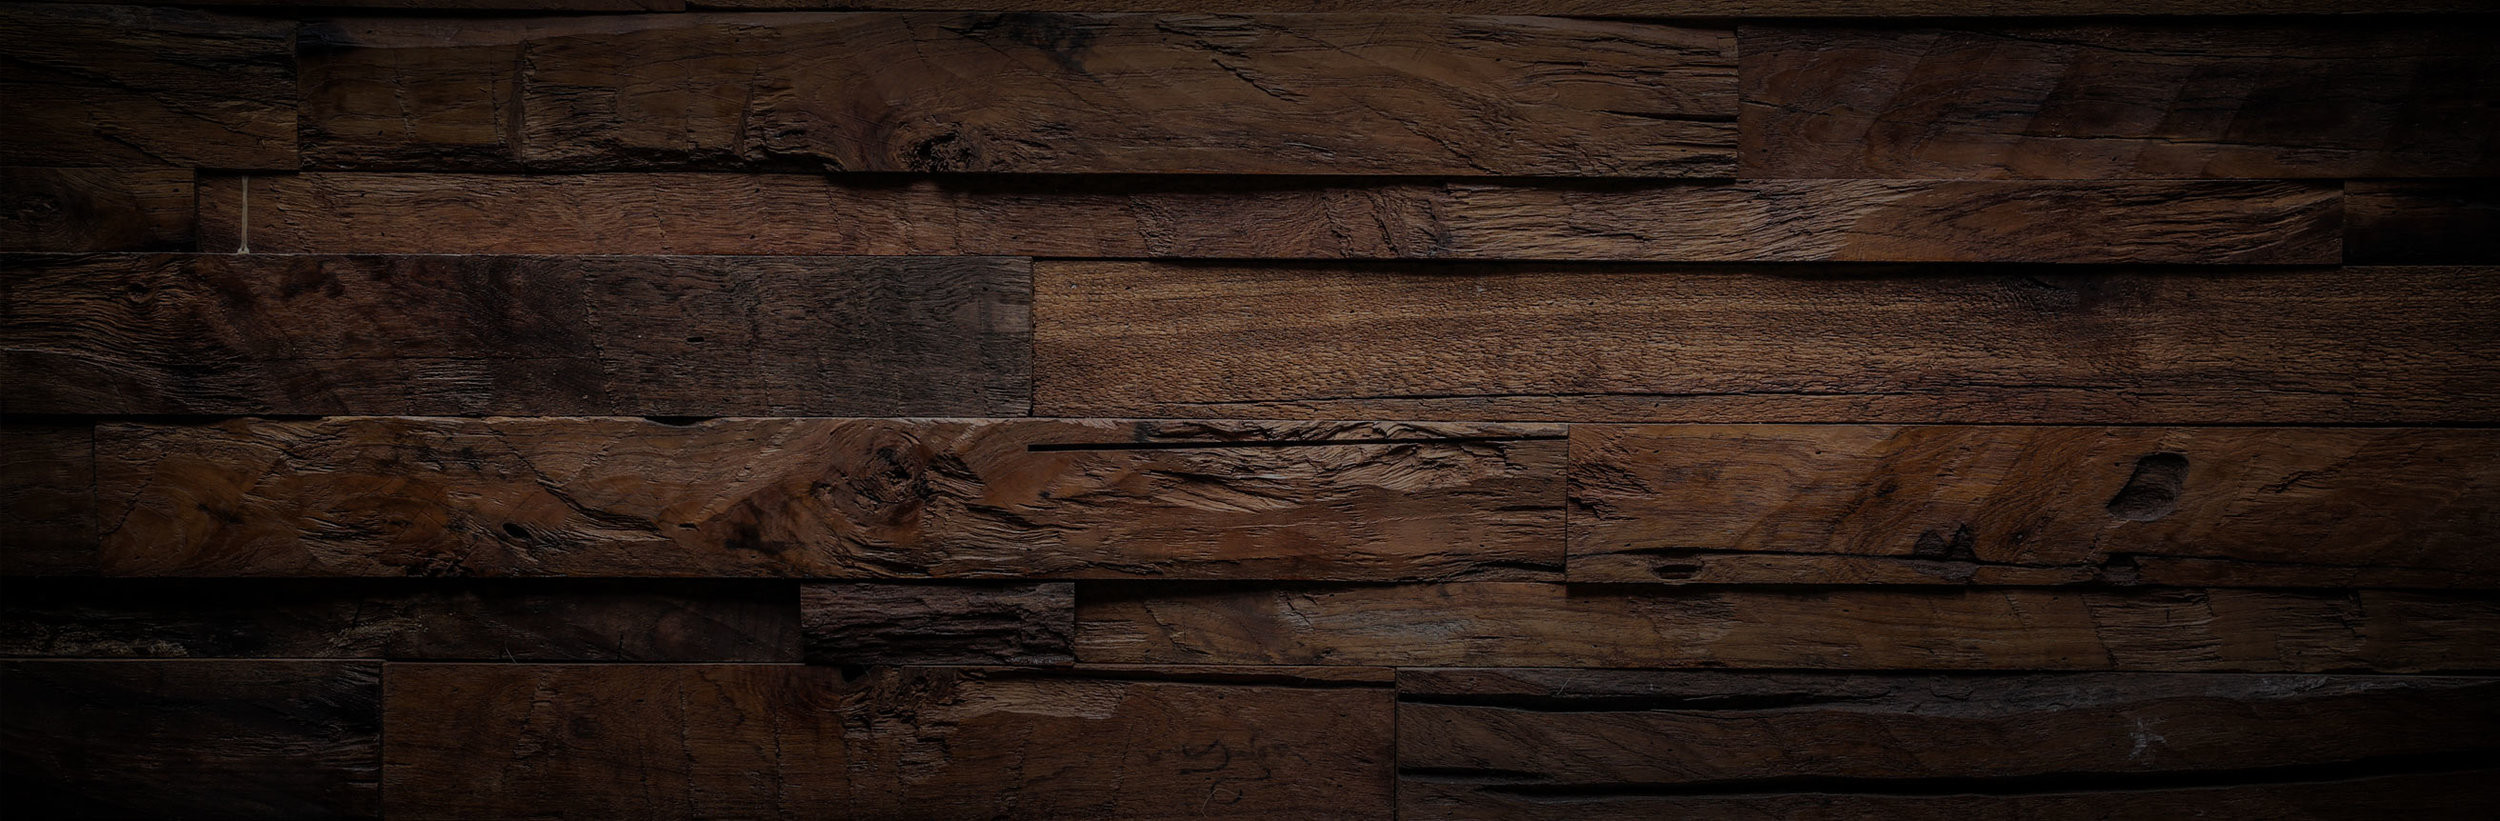 memphis hardwood flooring company of 312 pizza company within 312 pizza bottom button background 2625x862